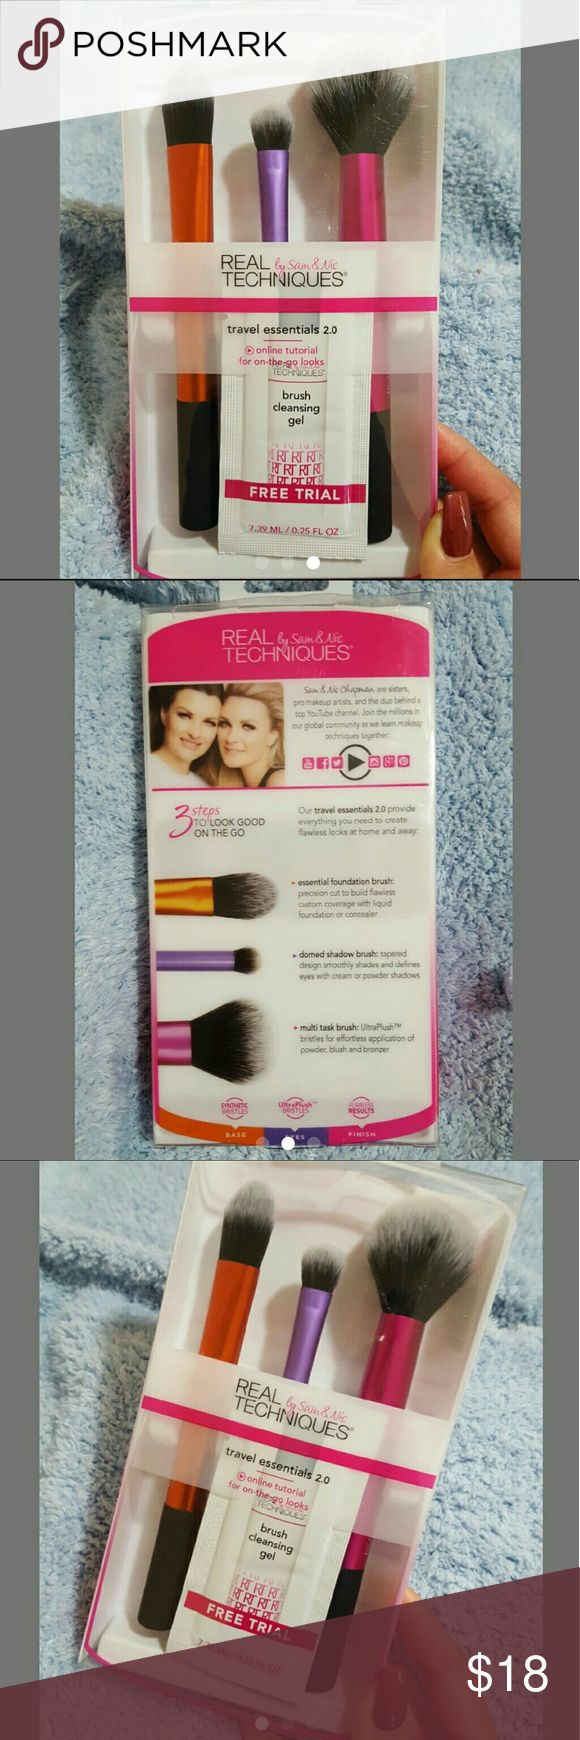 Real Techniques Travel Essentials Brushes Brand new set of real techniques Travel Essentials with a trial of brush cleaning gel. Never been opened.  All my items come from non-smoking home  Check out my other listings, I discount bundles! real techniques   Makeup Brushes & Tools